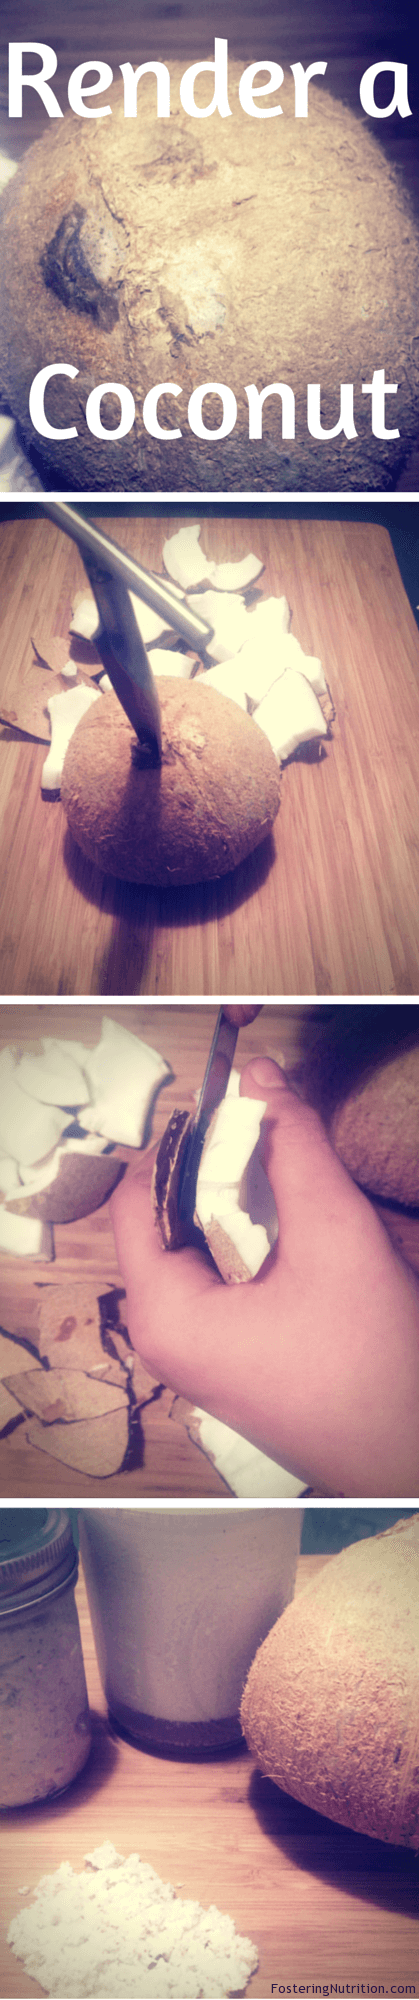 Render a Coconut